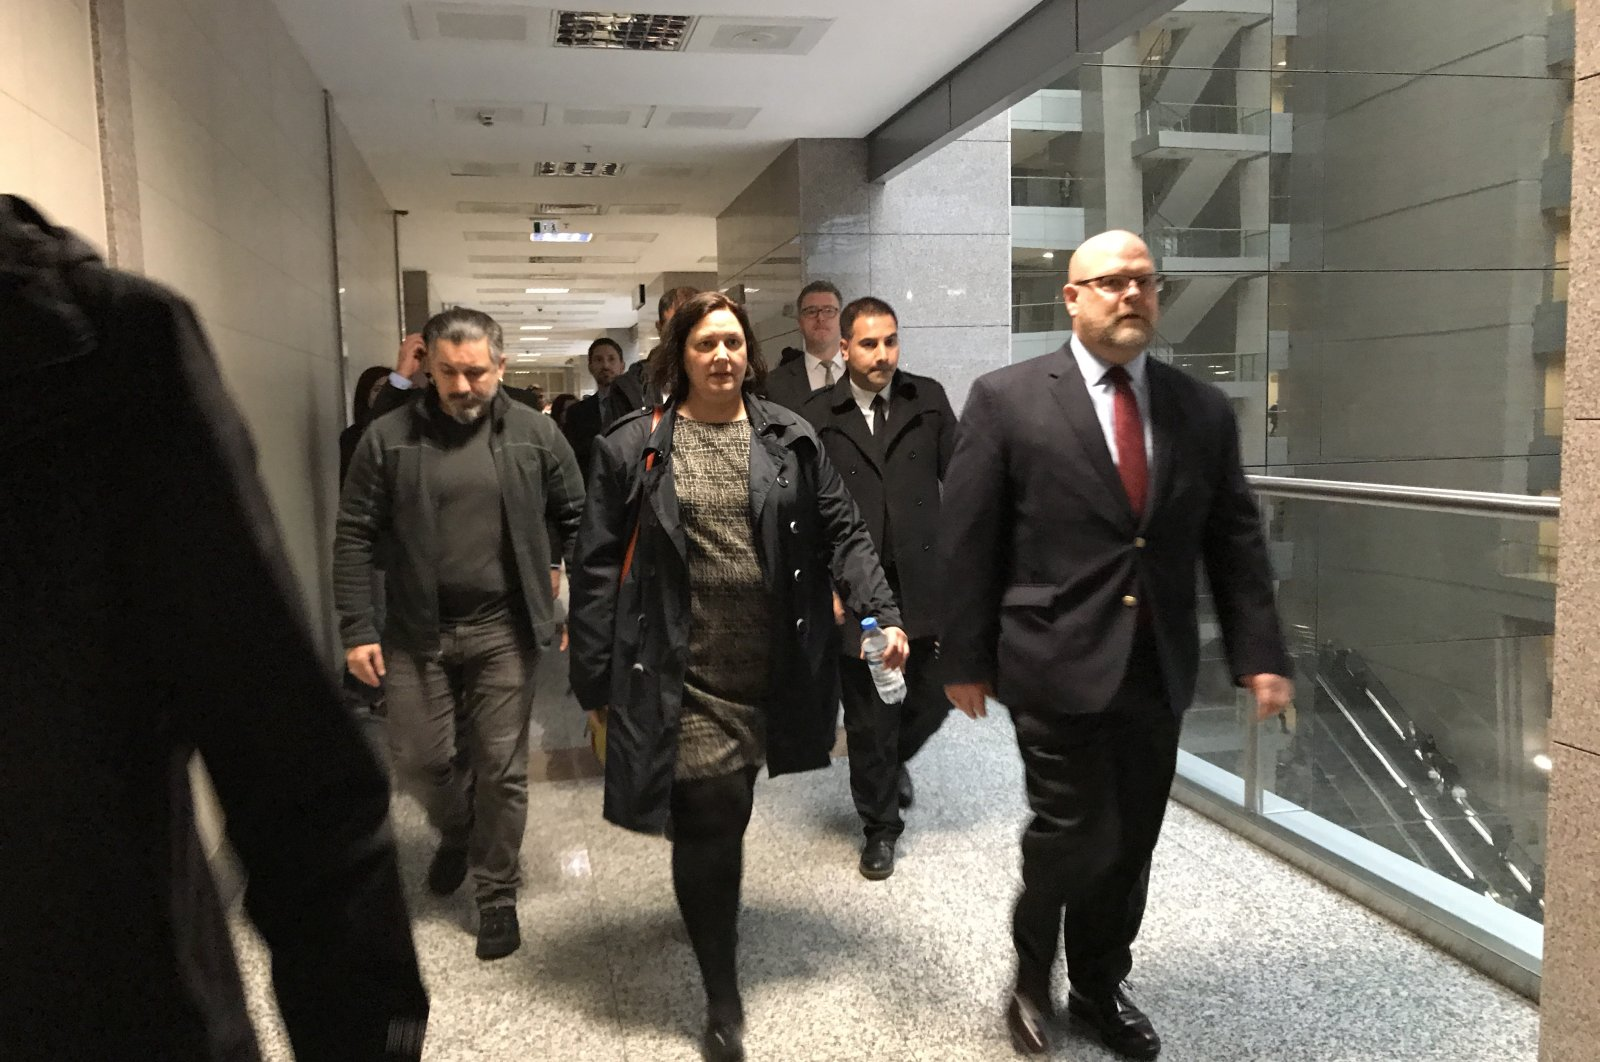 U.S. Consul General Daria Darnell (C) and Charge D'Affaires of the U.S. Embassy in Ankara Jeffrey Hovenier (R) in the courthouse where the trial of Metin Topuz would be held, Istanbul, March 10, 2020. (Photo by Fatih Ulaş)